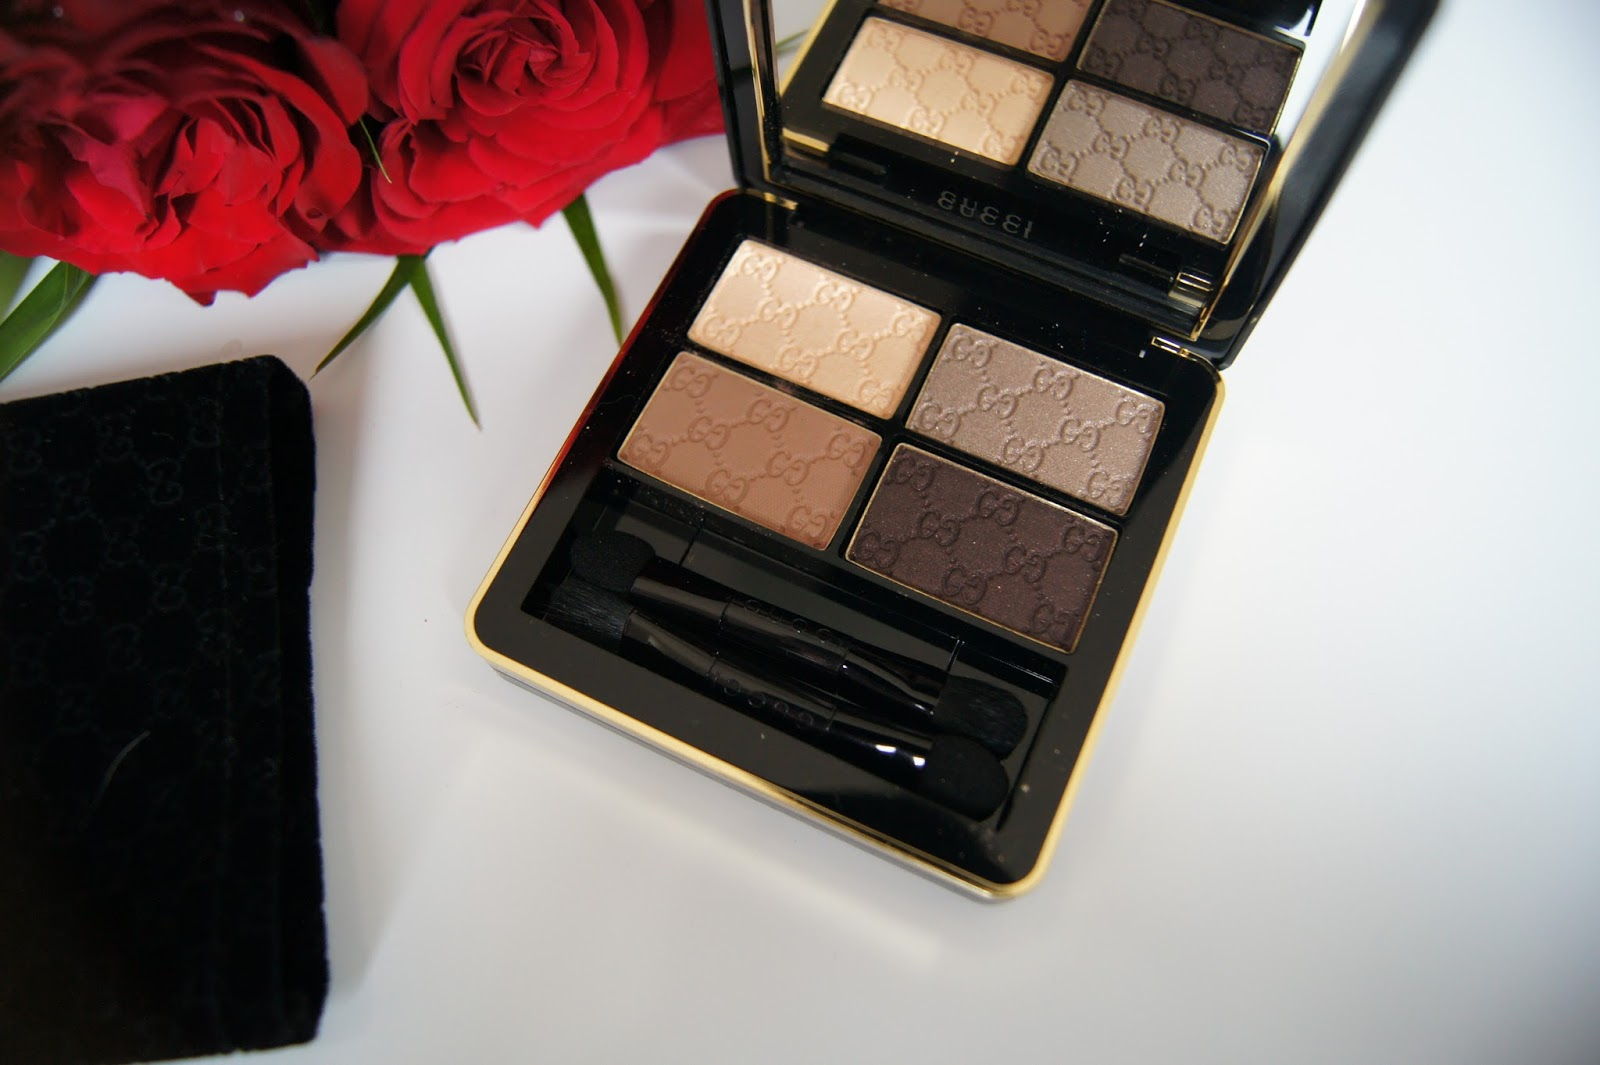 Gucci Magnetic Color Shadow Quad in Tuscan Storm review